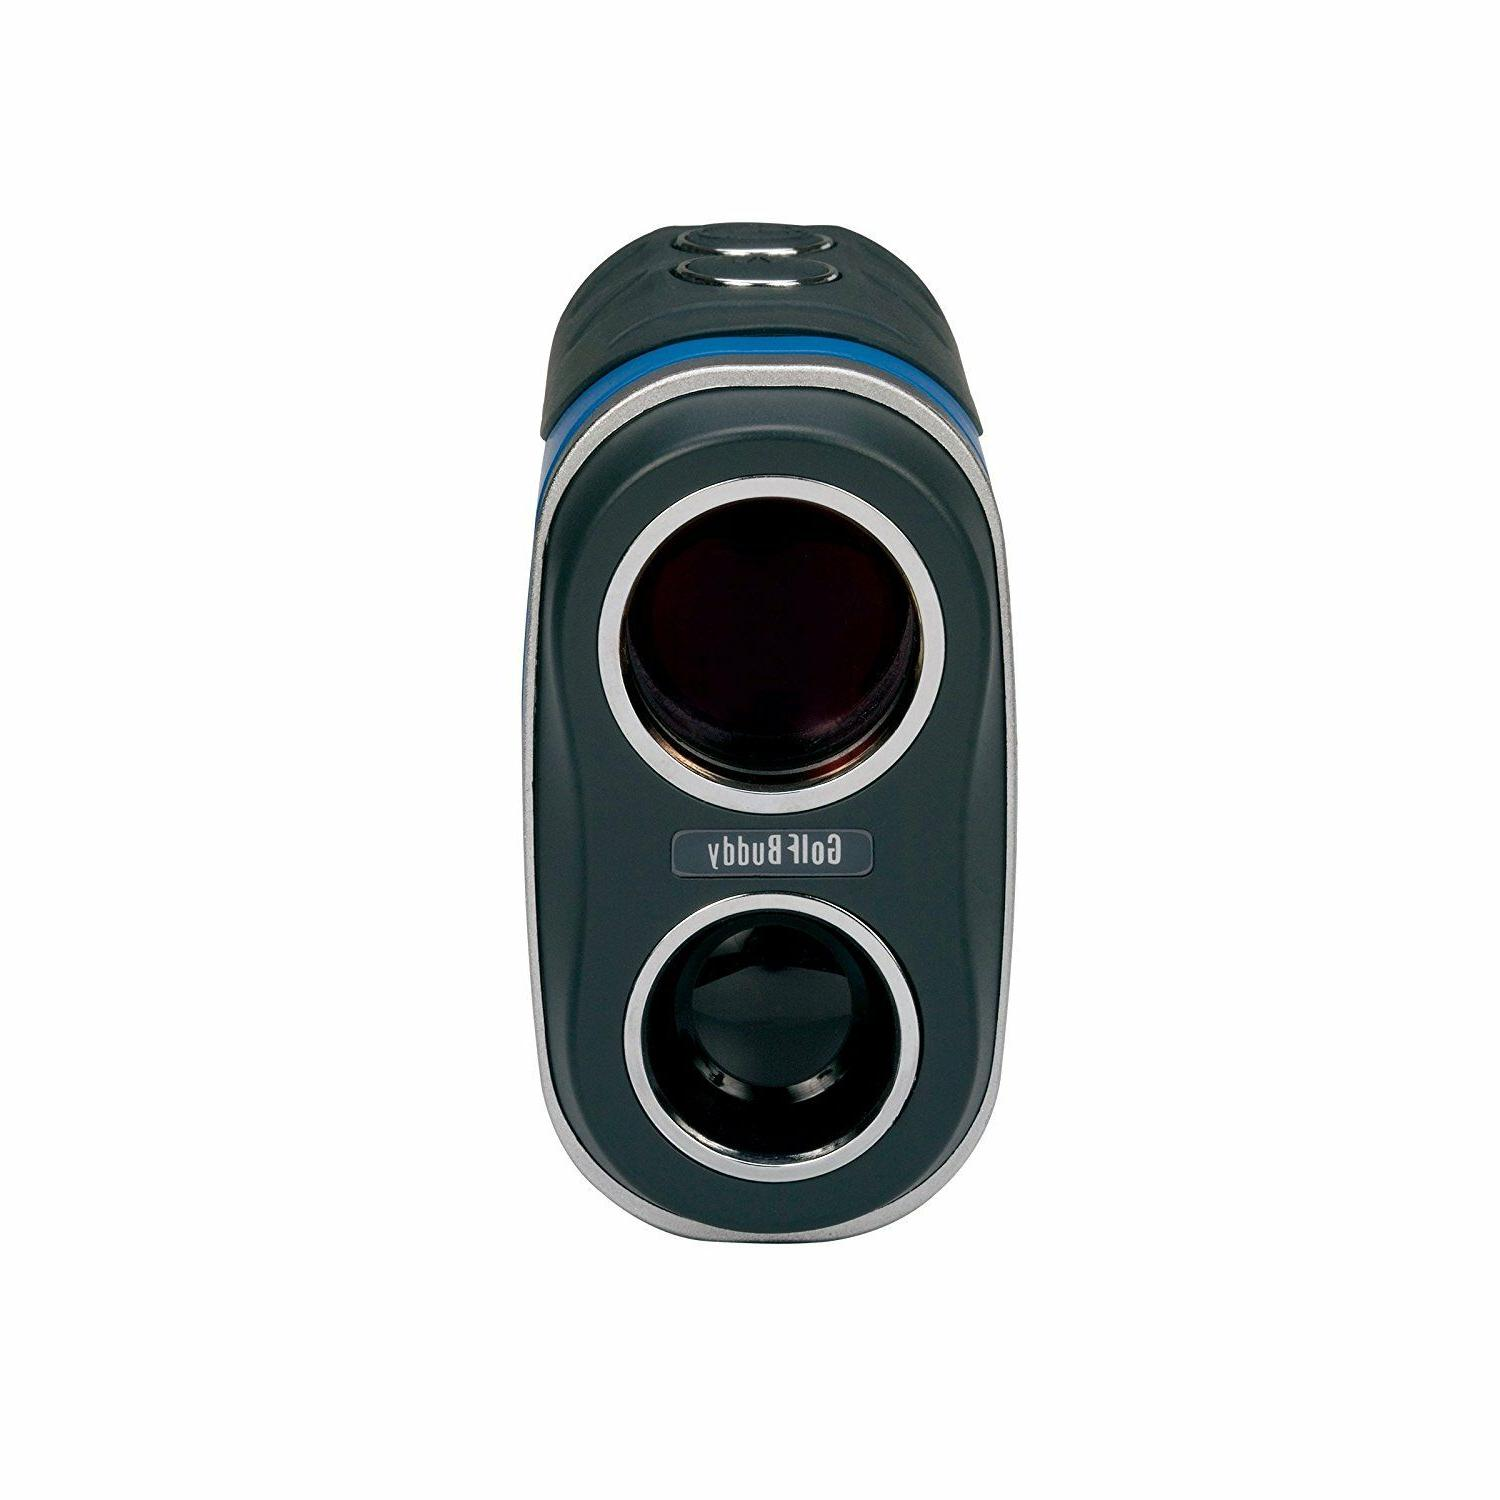 GolfBuddy LR5 Golf Rangefinder - - Shipping